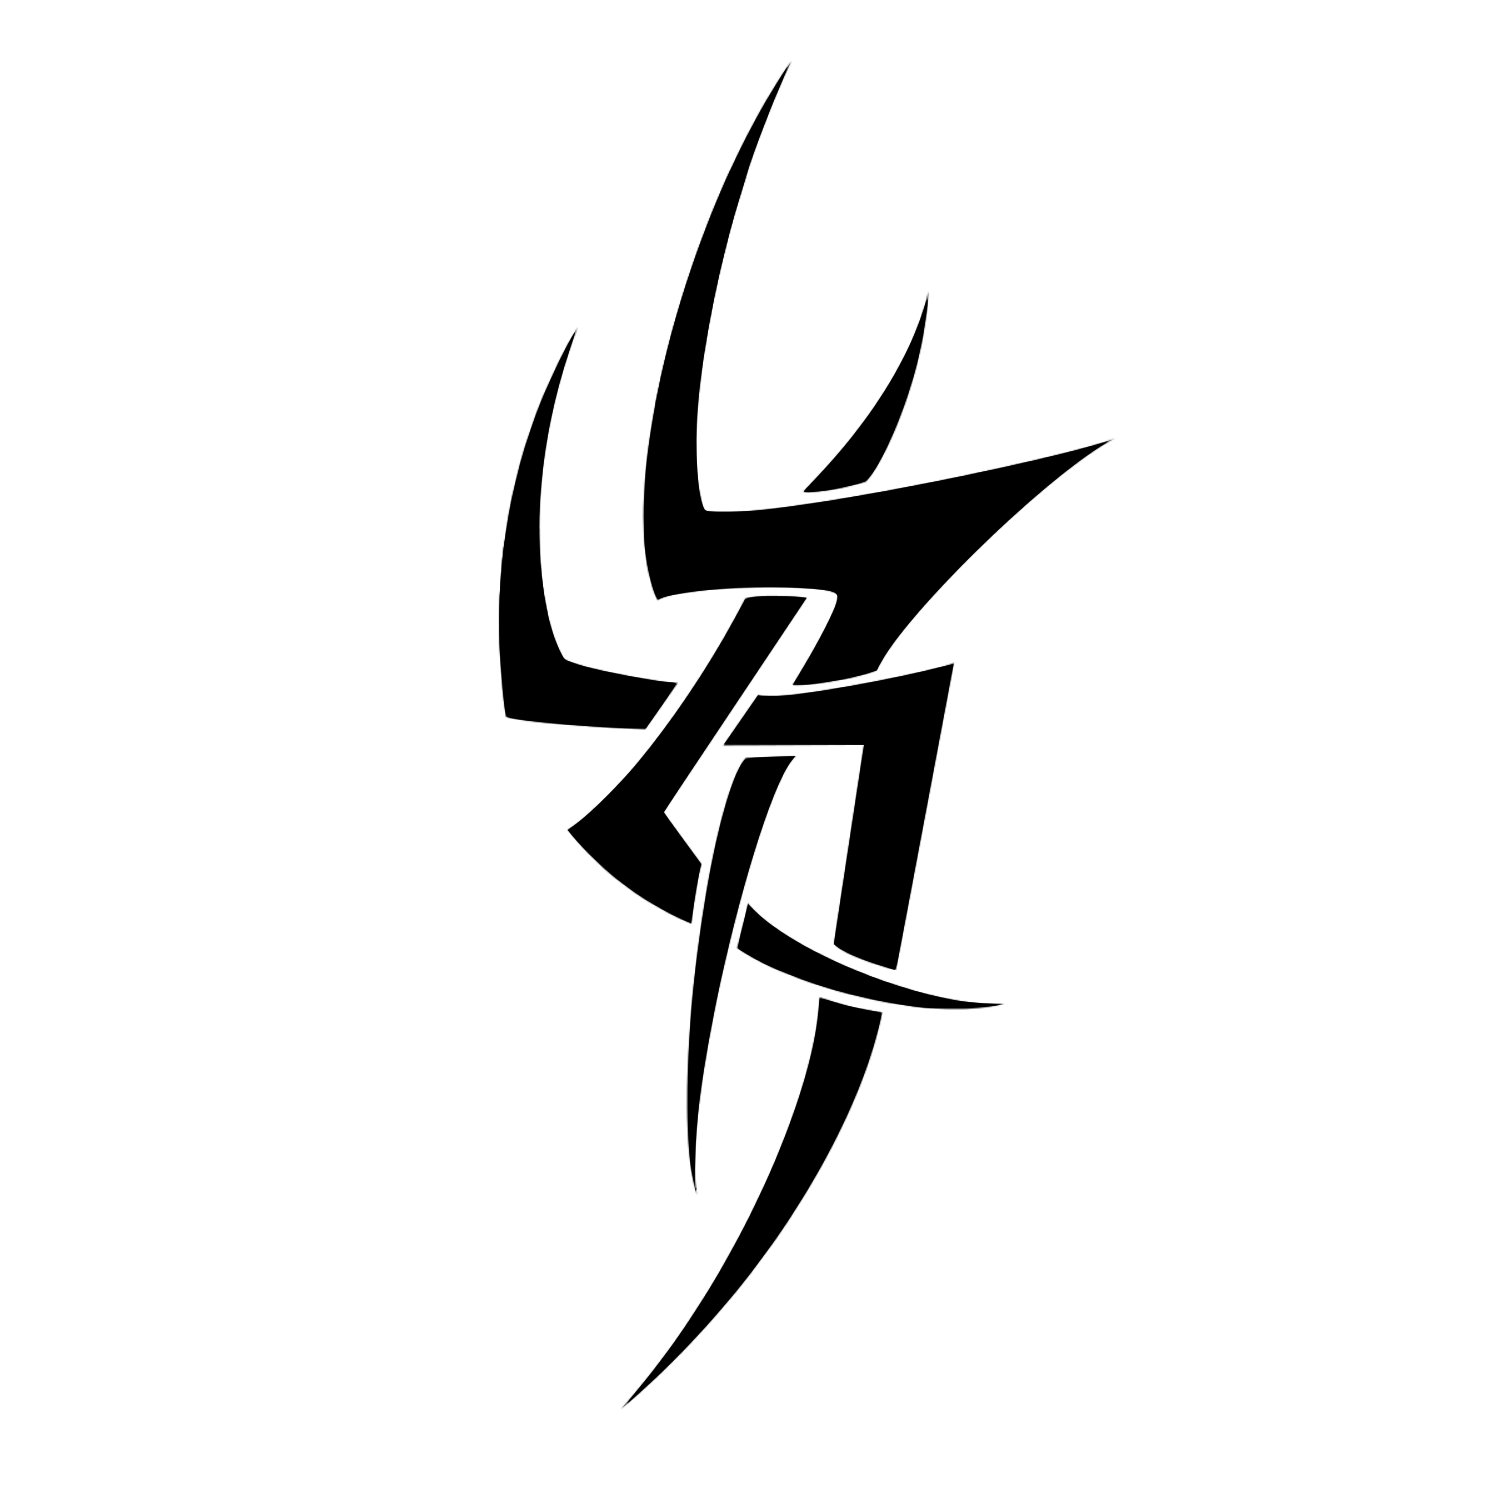 Tribal Tattoo Vector 2 (SVG, PNG).